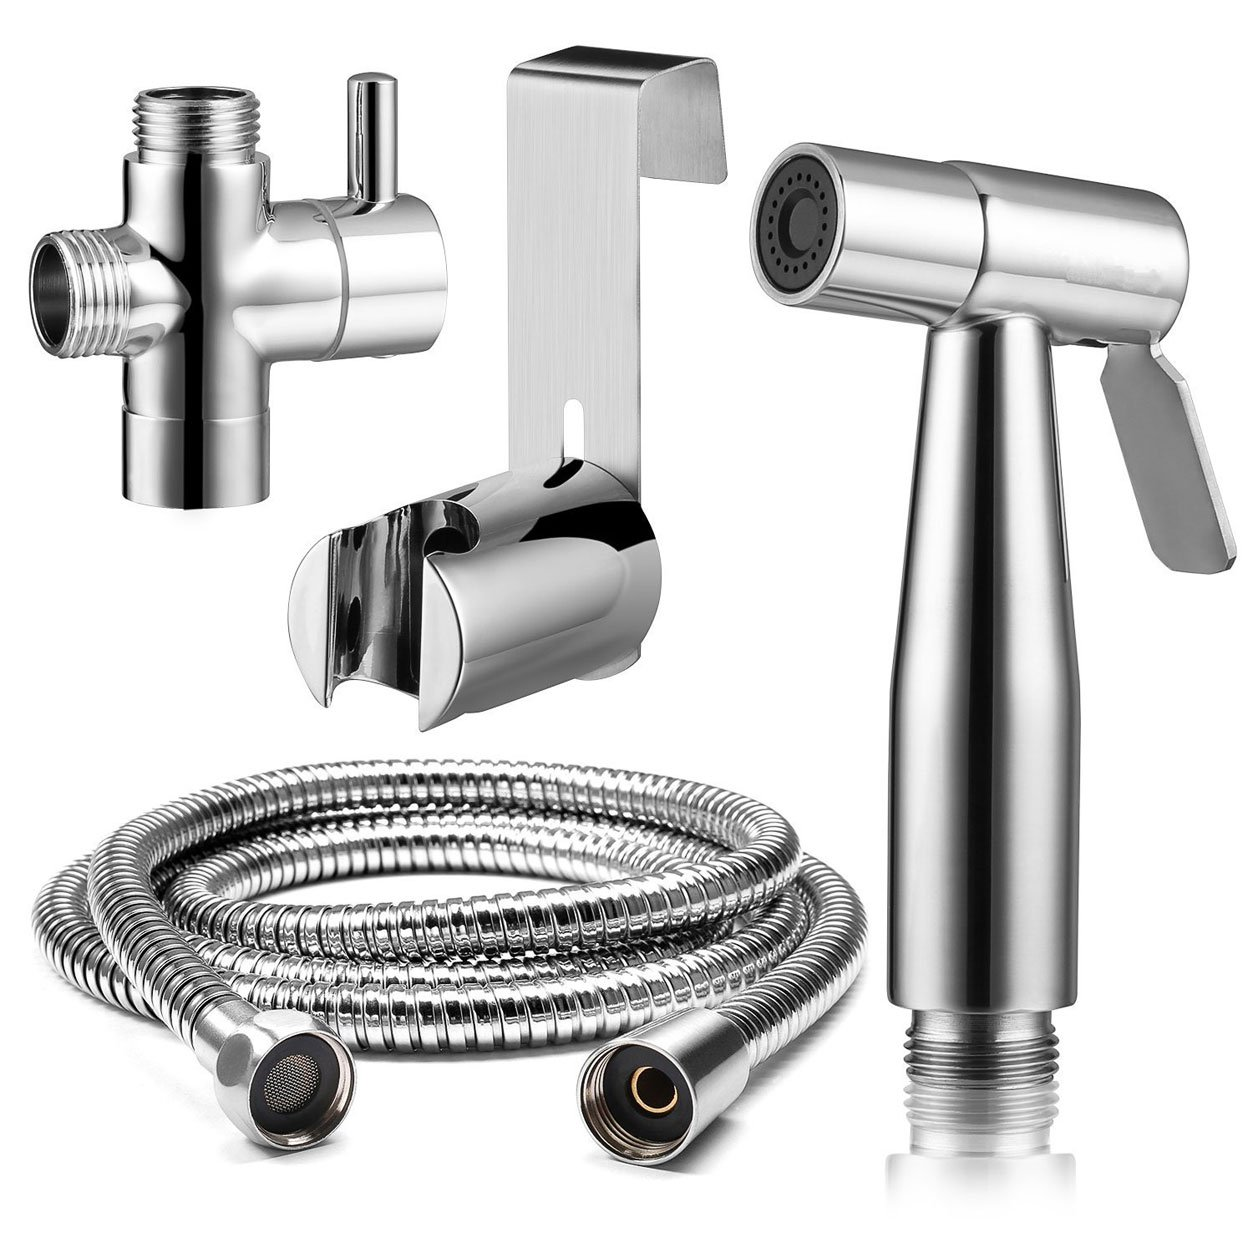 Handheld Toilet Bidet Sprayer Set Pipe Shattaf Water Cleaner Cloth Diaper Sprayer for Toilet Attachment with Water Pressure Control Hose and T Valve-Chrome Ginbel Direct